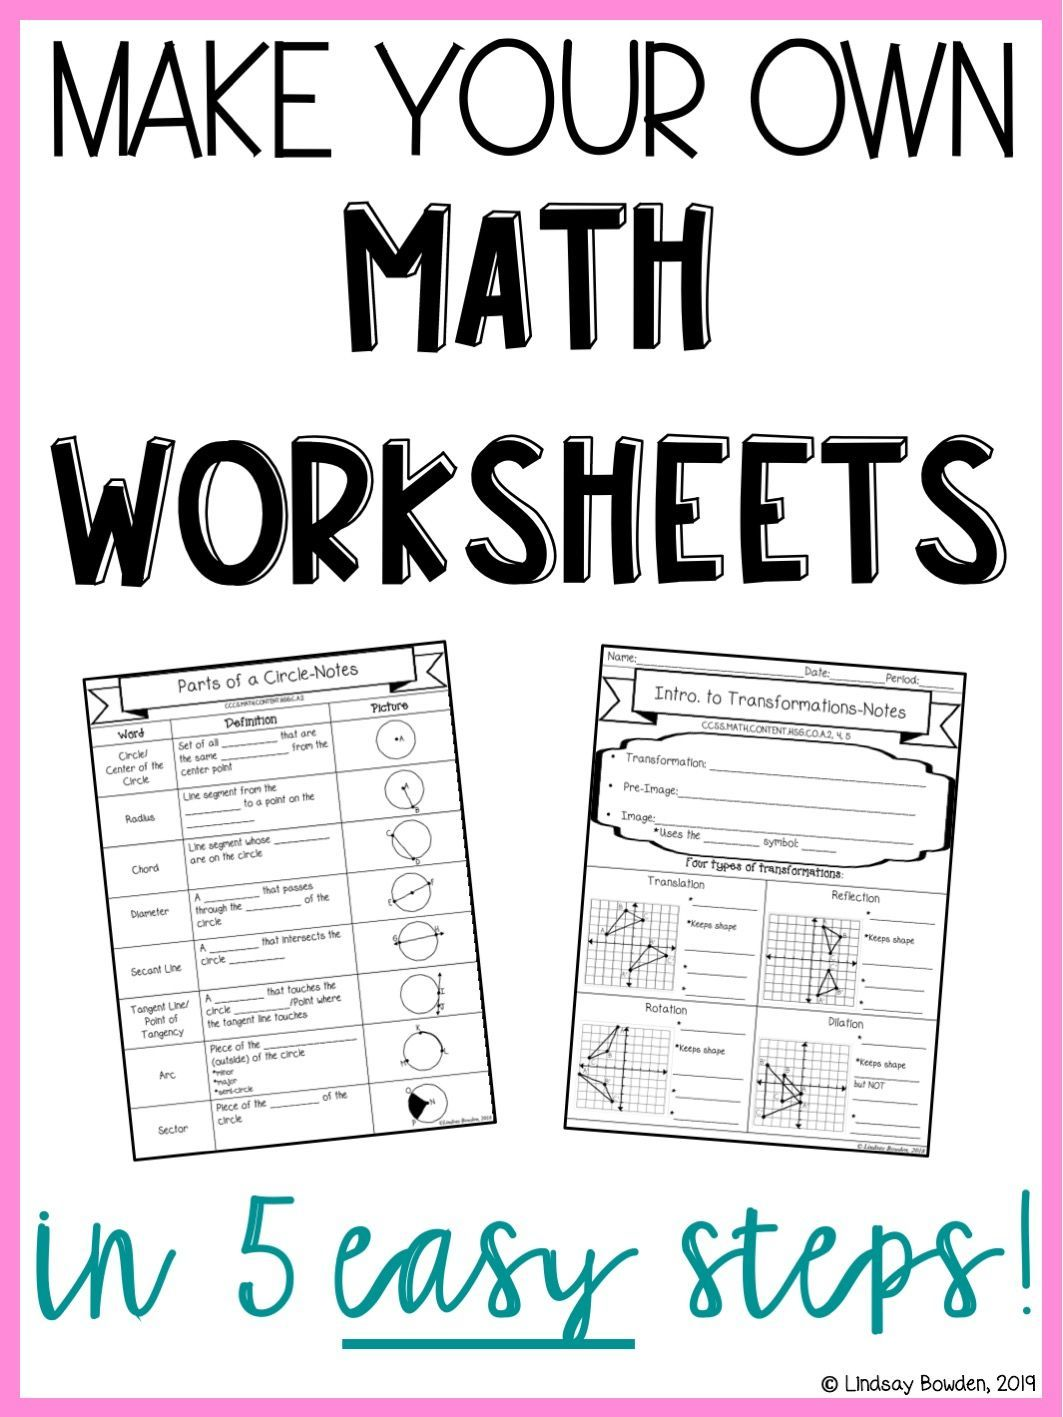 Learn How To Make Your Own Math Worksheets Notes